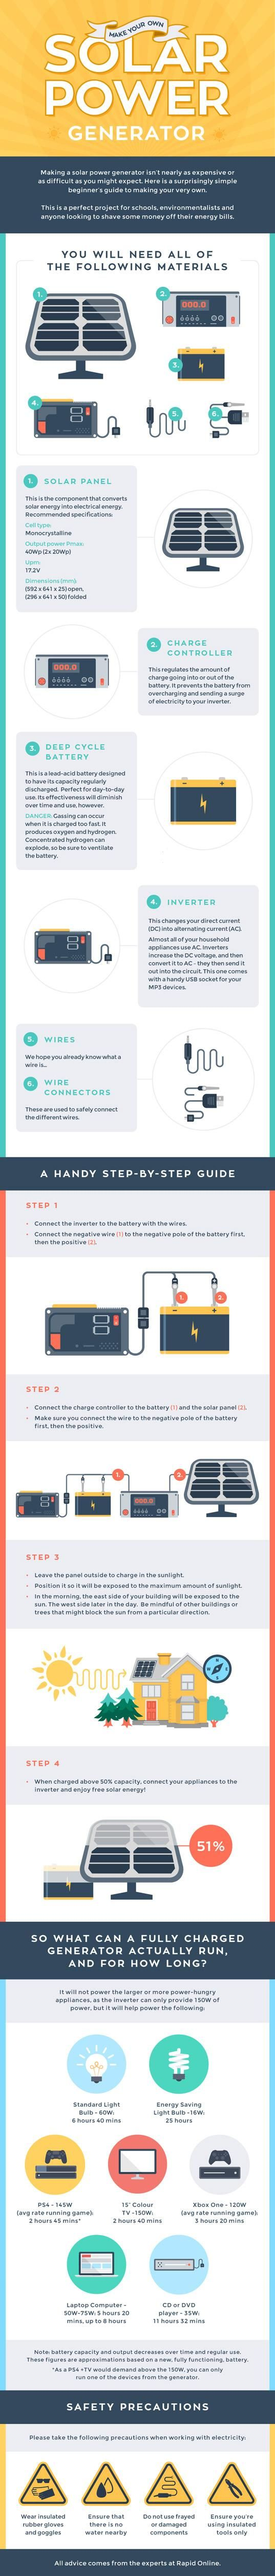 Did you know that by acquiring the right pieces, you can simply put together a solar powered battery that can charge appliances and run your electronics for hours? It's not as complex as it seems...